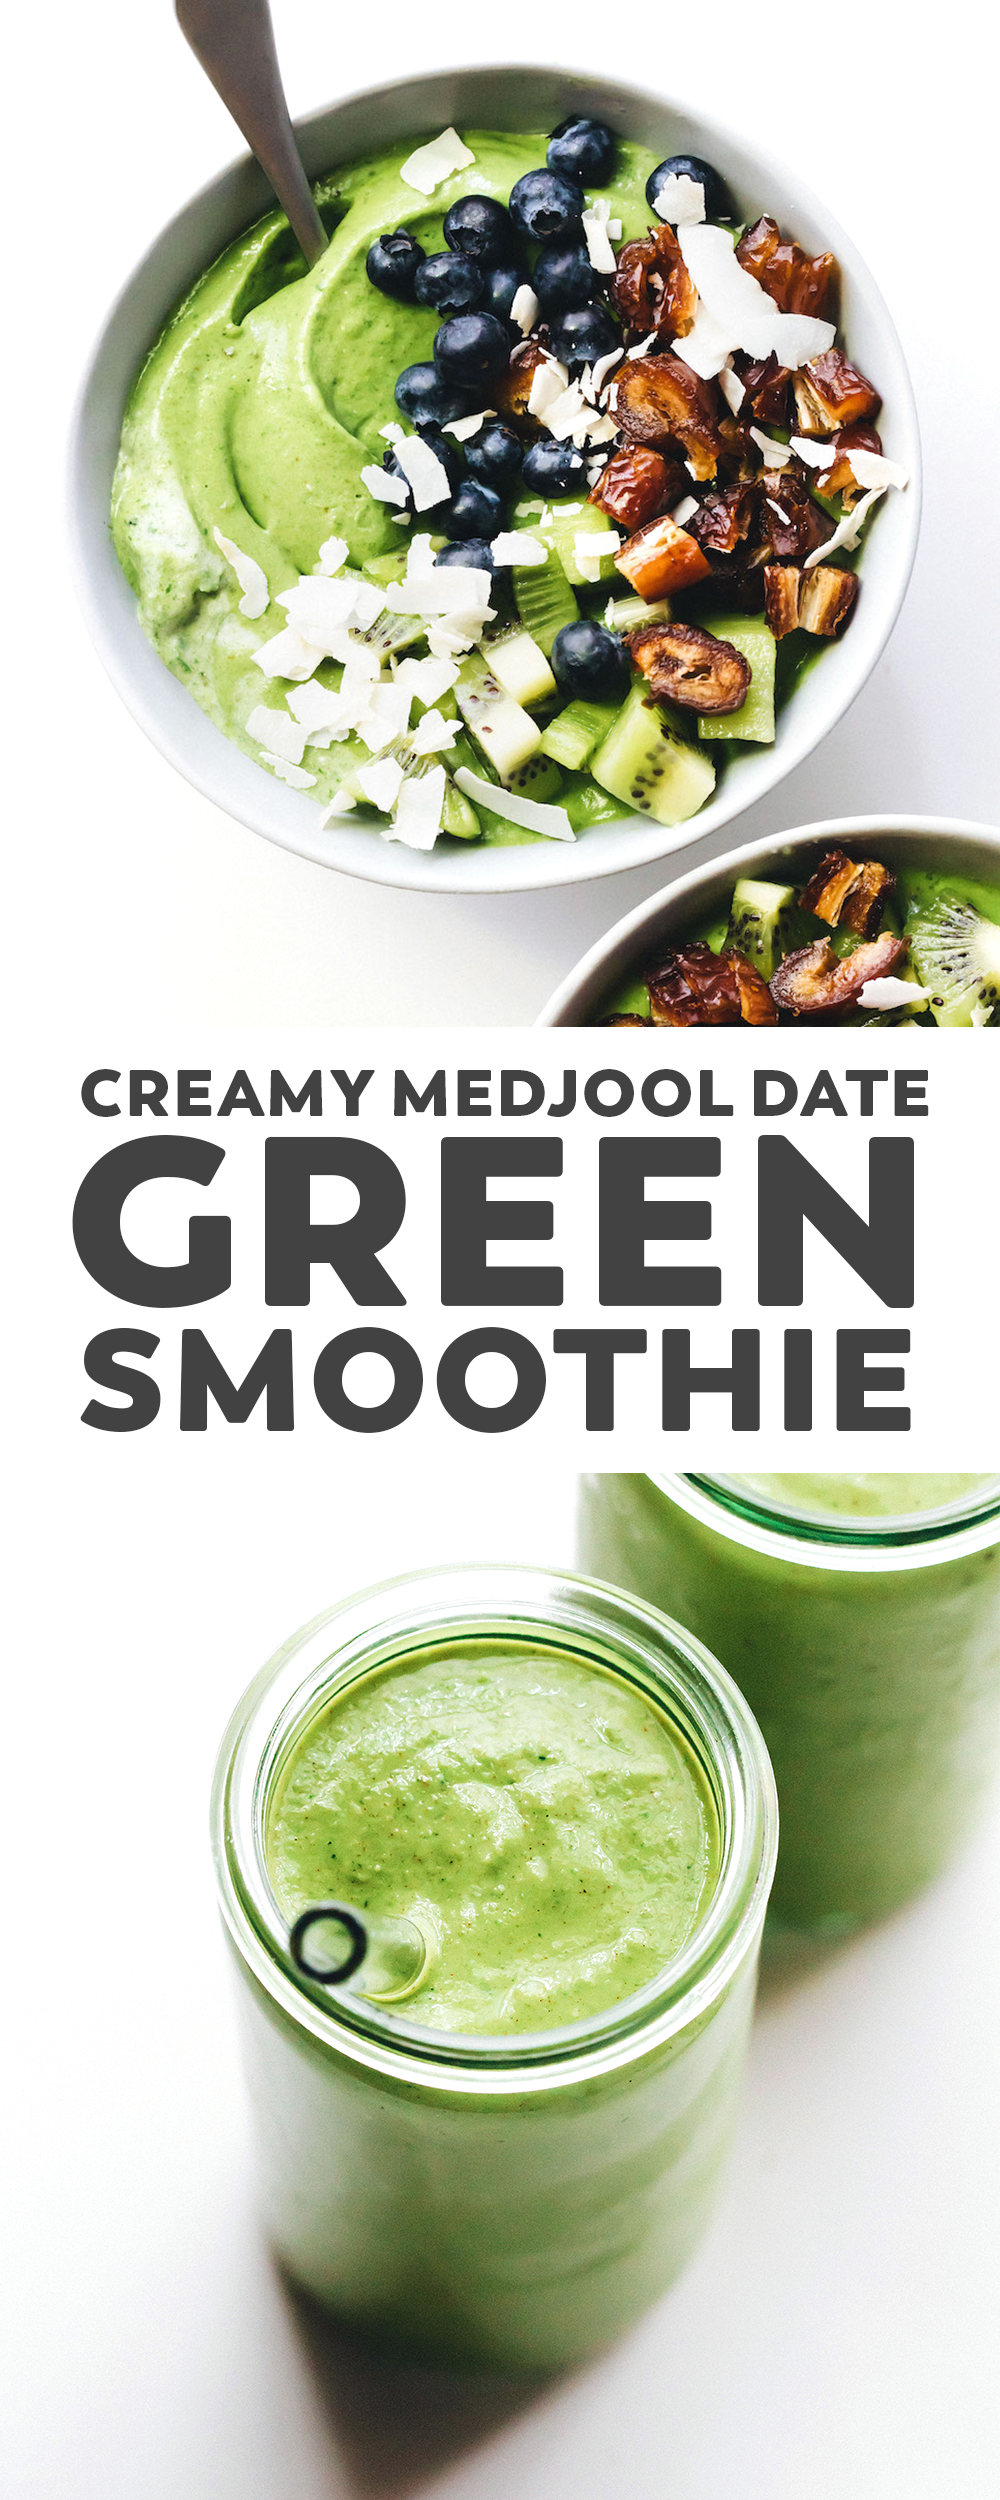 Creamy Medjool Date Green Smoothie images